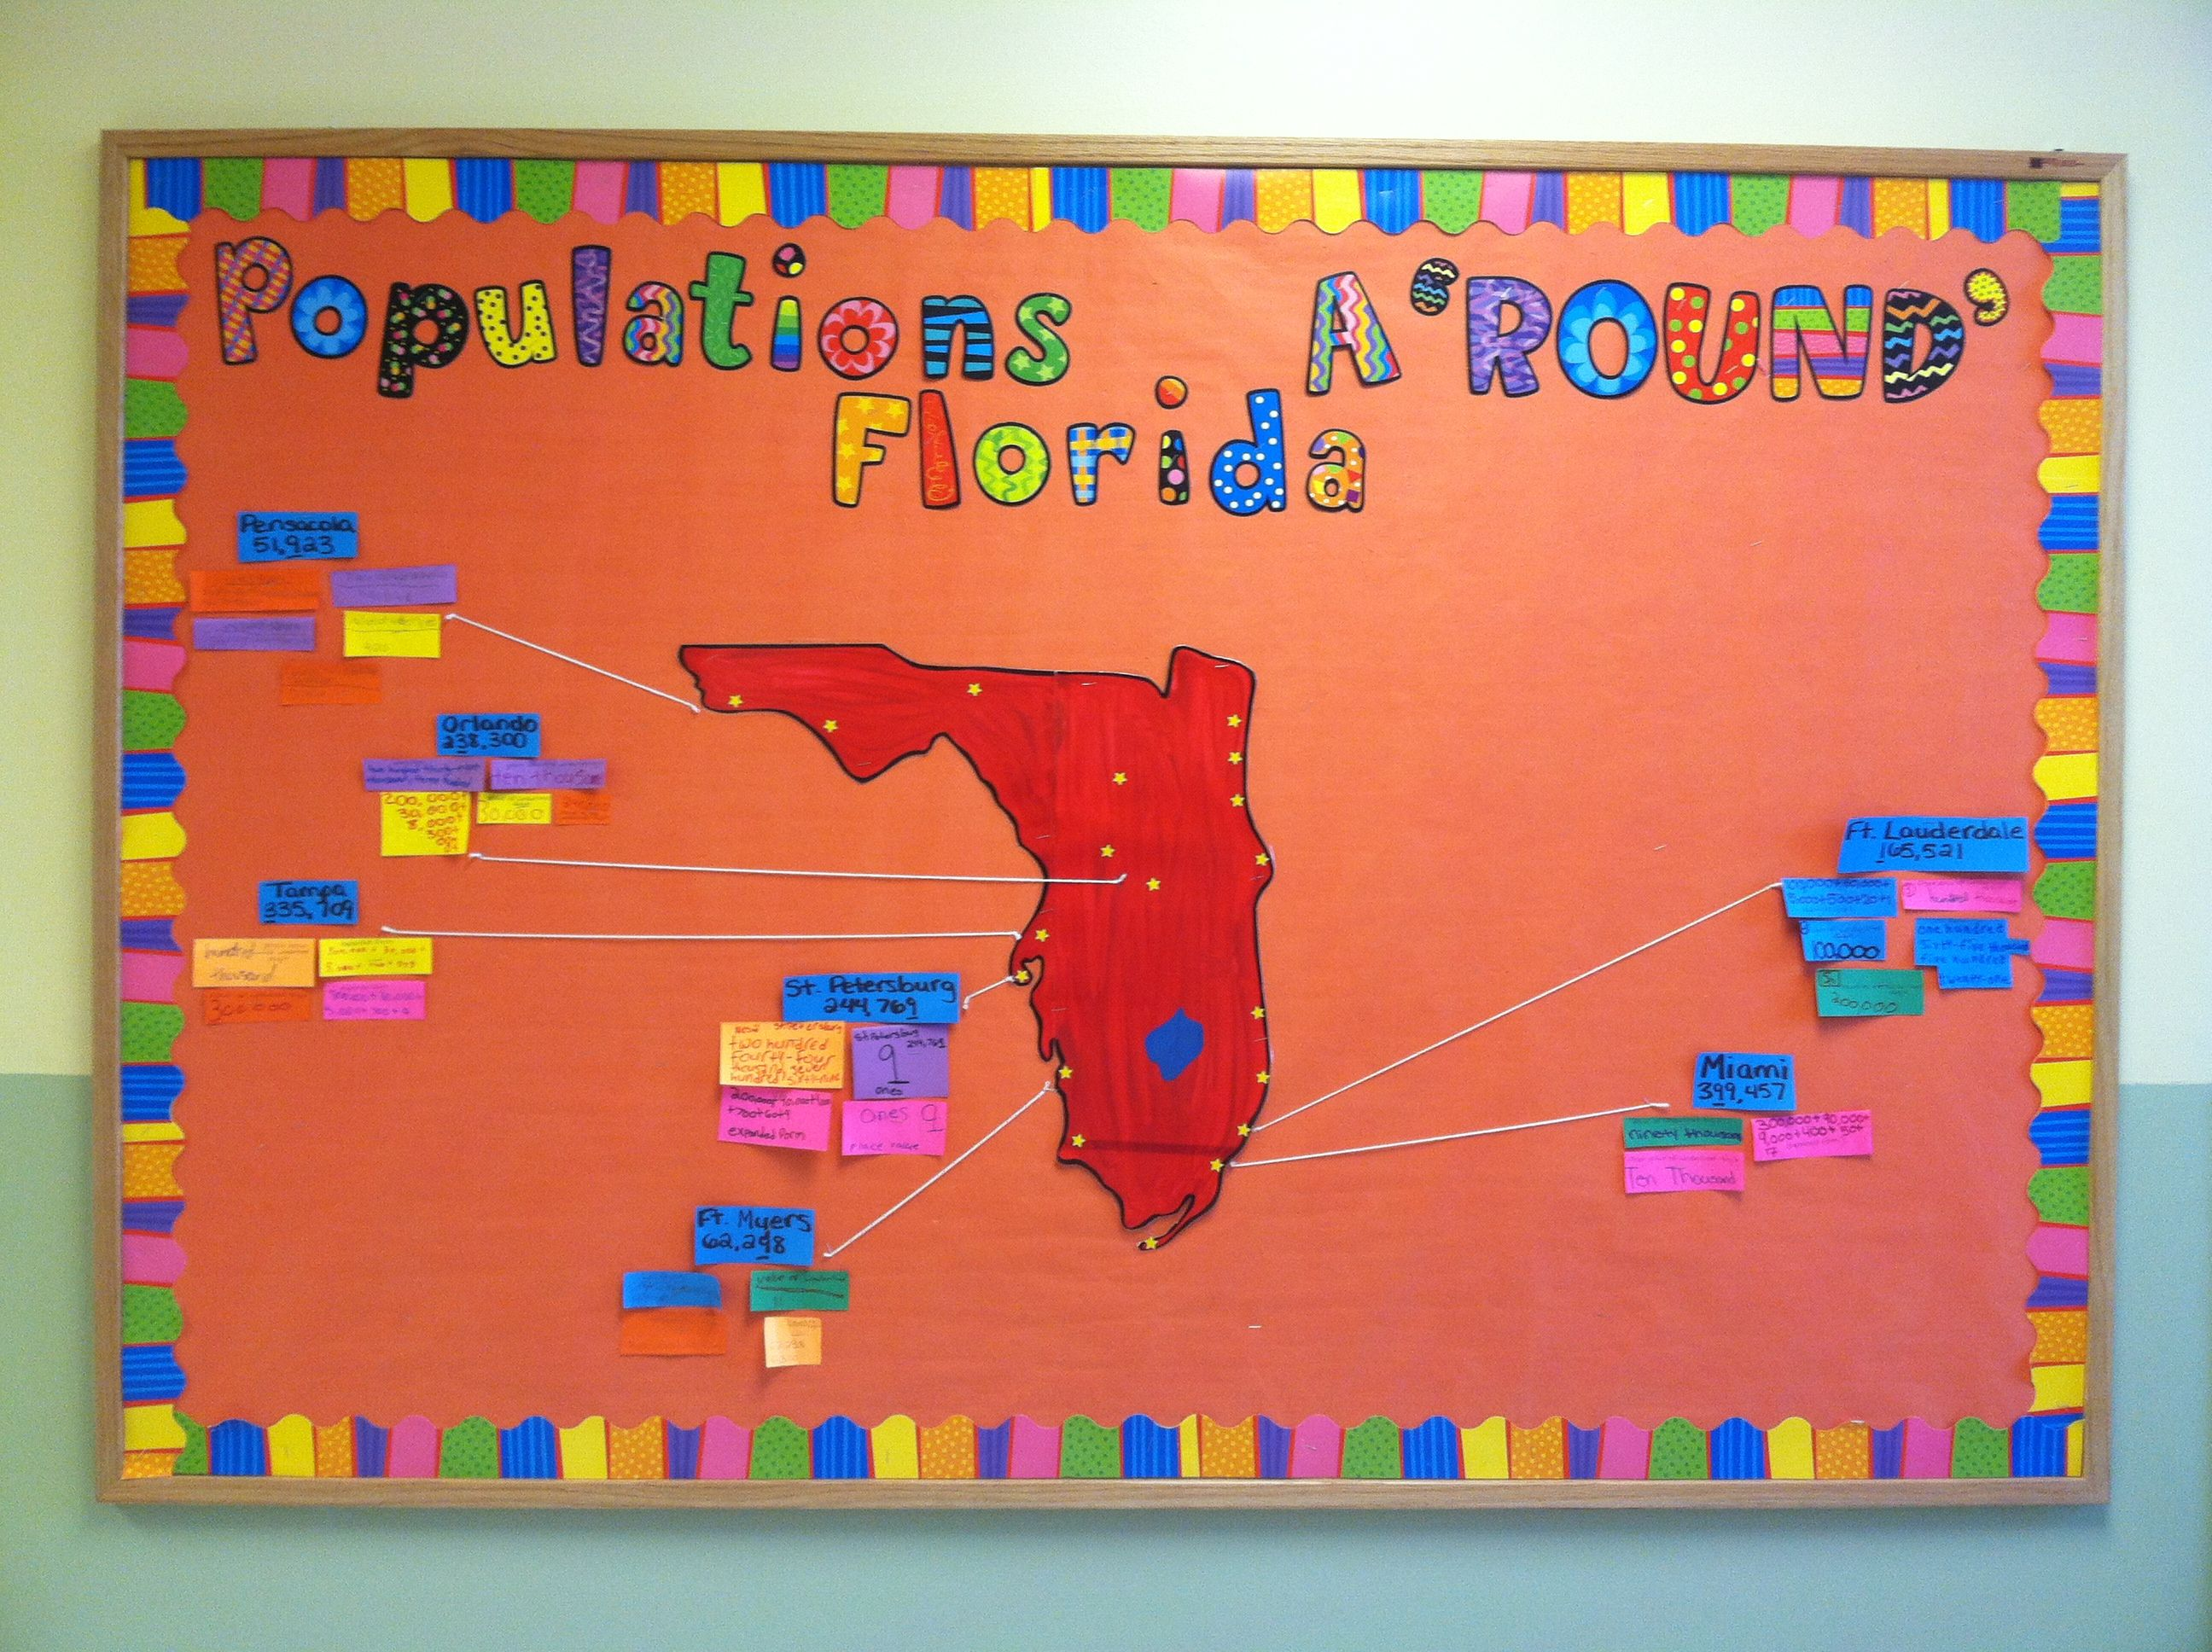 Rounding bulletin board. Students took the populations of major Florida cities, rounded them to the underlined digit, wrote the number in word form, wrote the place value of the underlined digit, wrote the value of the underlined digit, and wrote the number in expanded form.